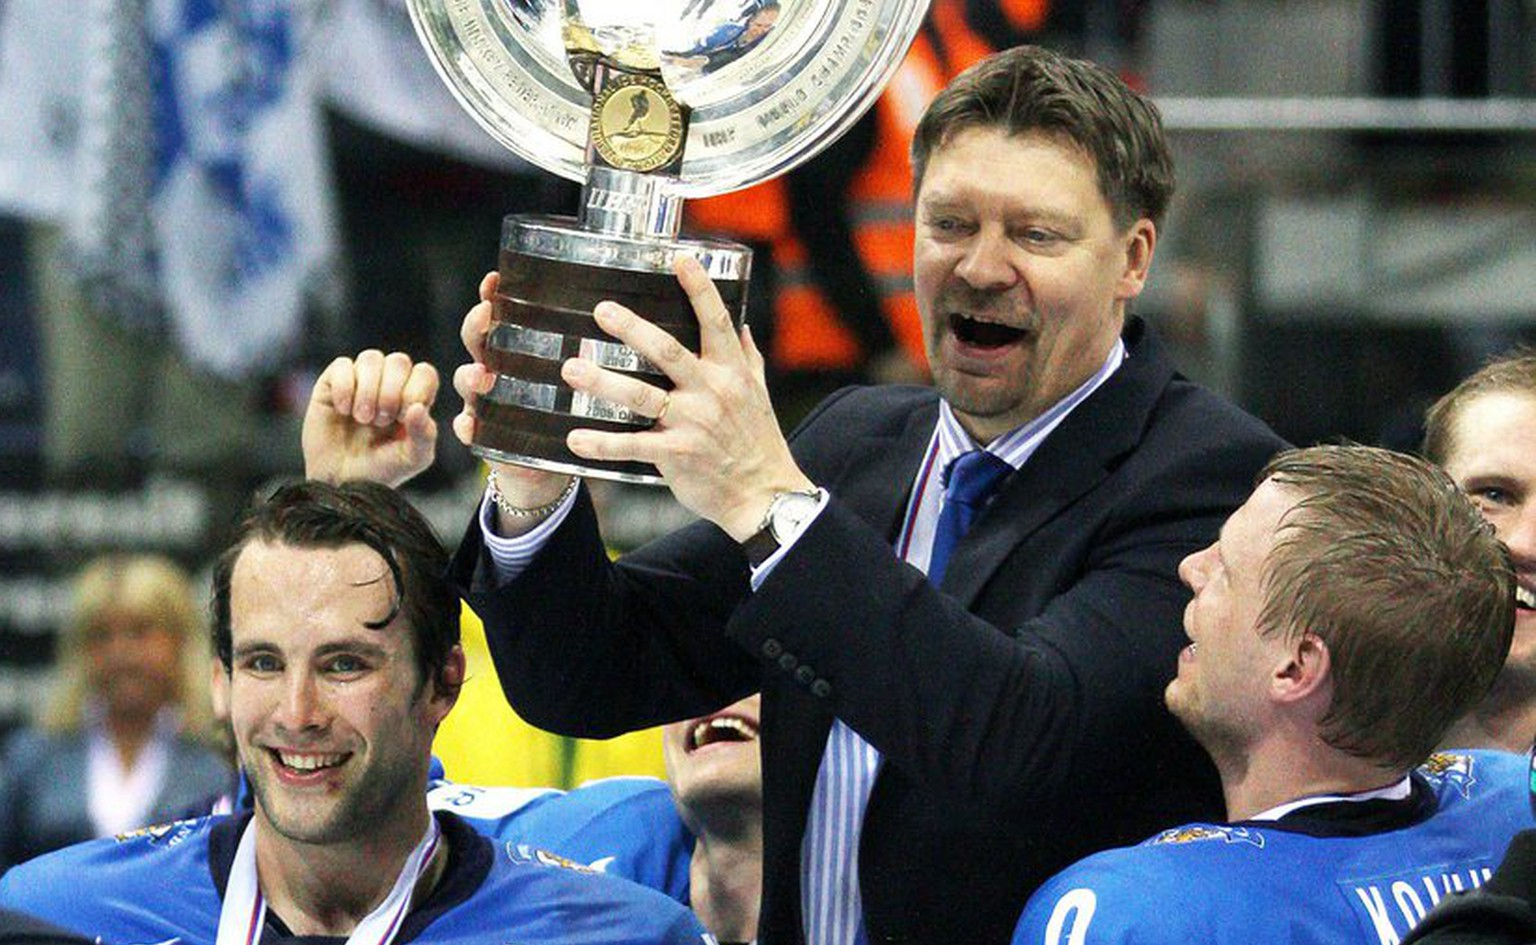 epa02735352 Players of Finland Tuomo Ruutu (L) and Mikko Koivu (R) lift their head coach Jukka Jalonen (C) with the trophy after they won the Ice Hockey World Championship final match between Sweden and Finland at the Orange Arena in Bratislava, Slovakia, 15 May 2011. Finland won 6-1.  EPA/PETER HUDEC